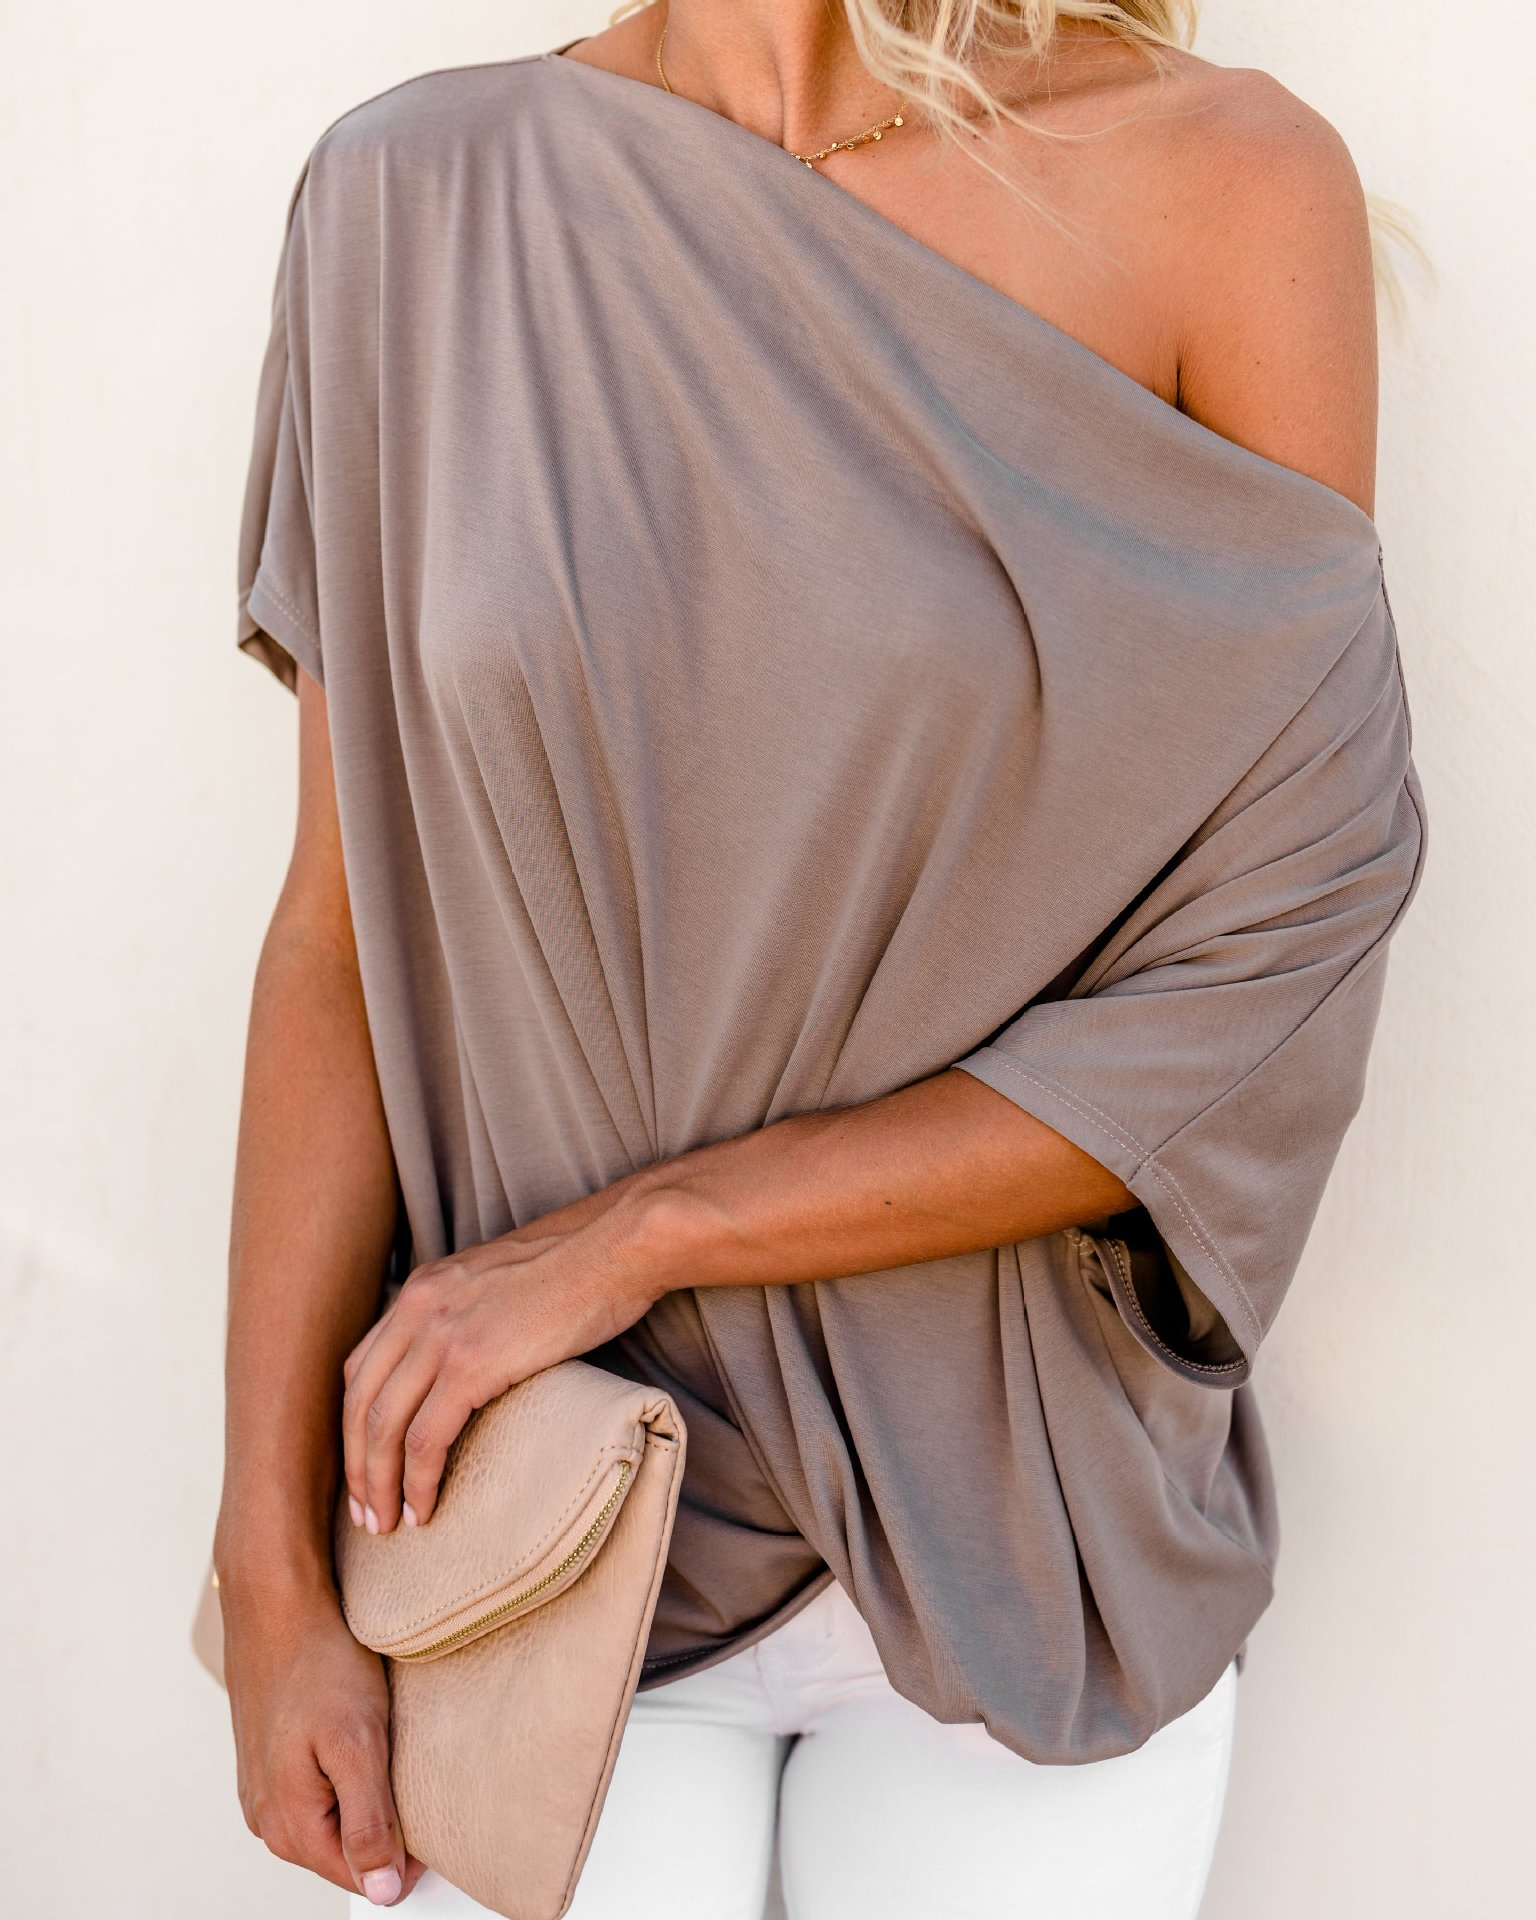 Silky One-Shoulder Colored Top for Greek Goddess Vibes